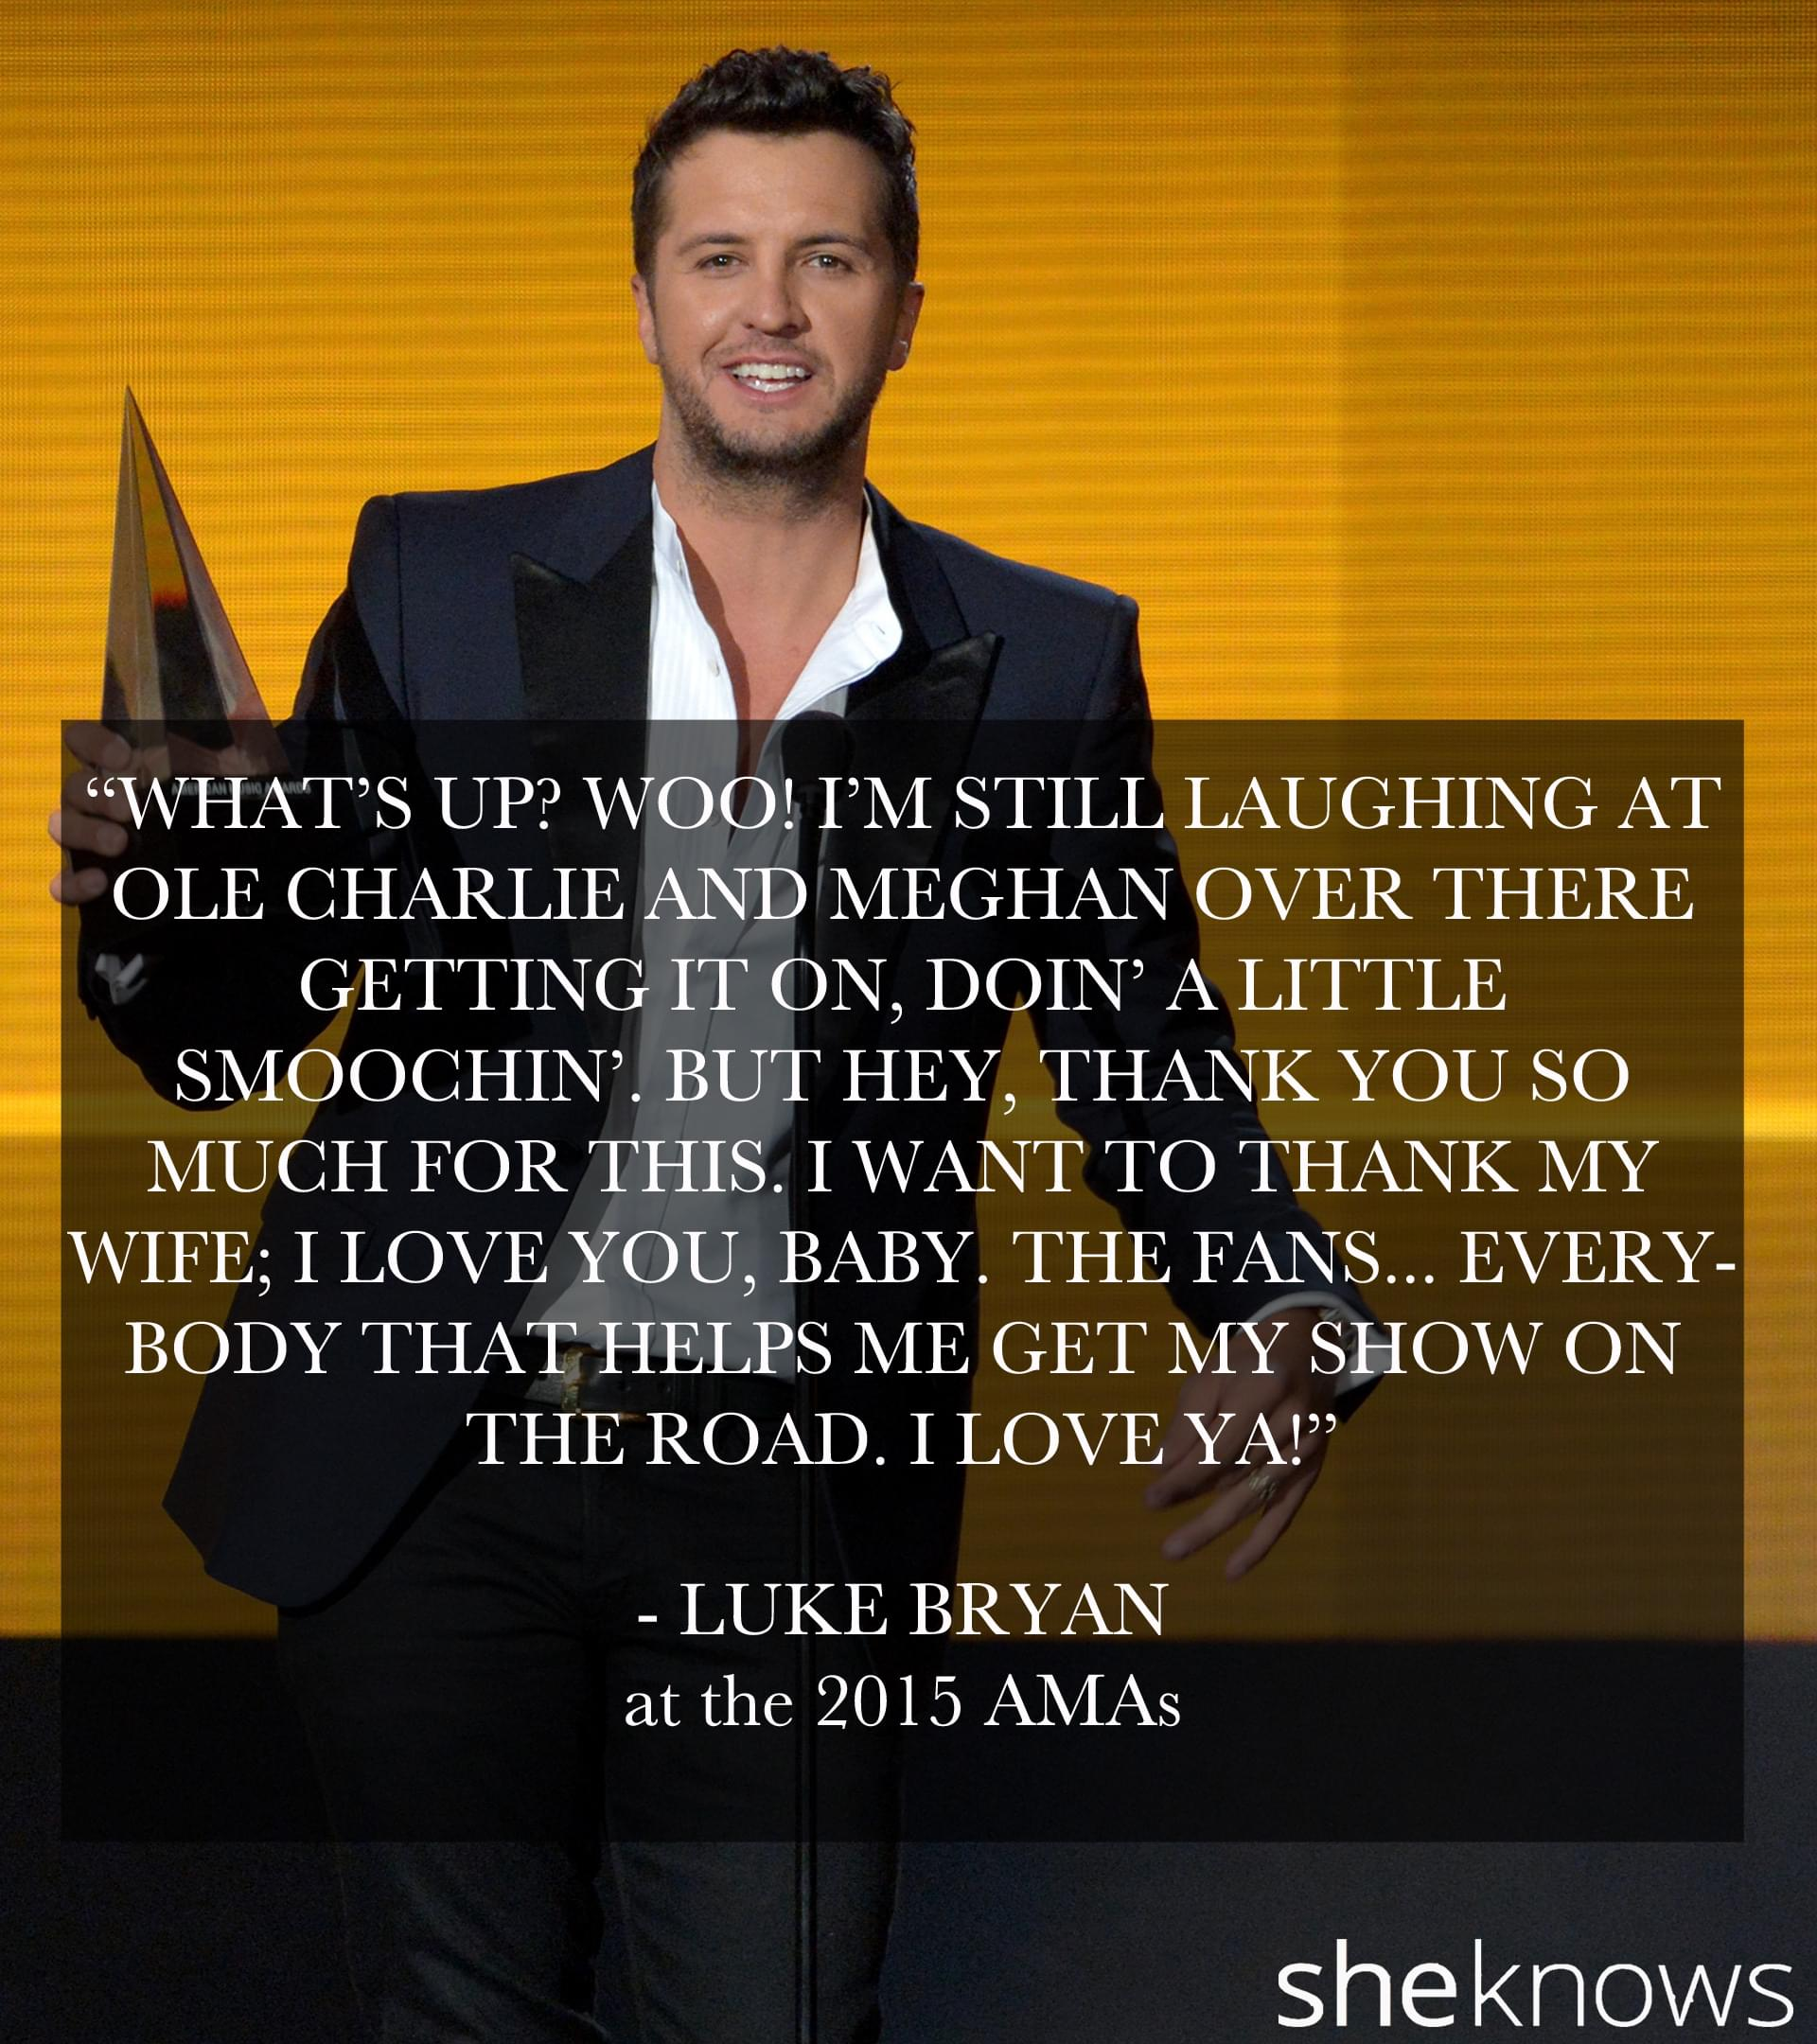 Luke Bryan, Sam Hunt and Carrie Underwood Score At The AMA's